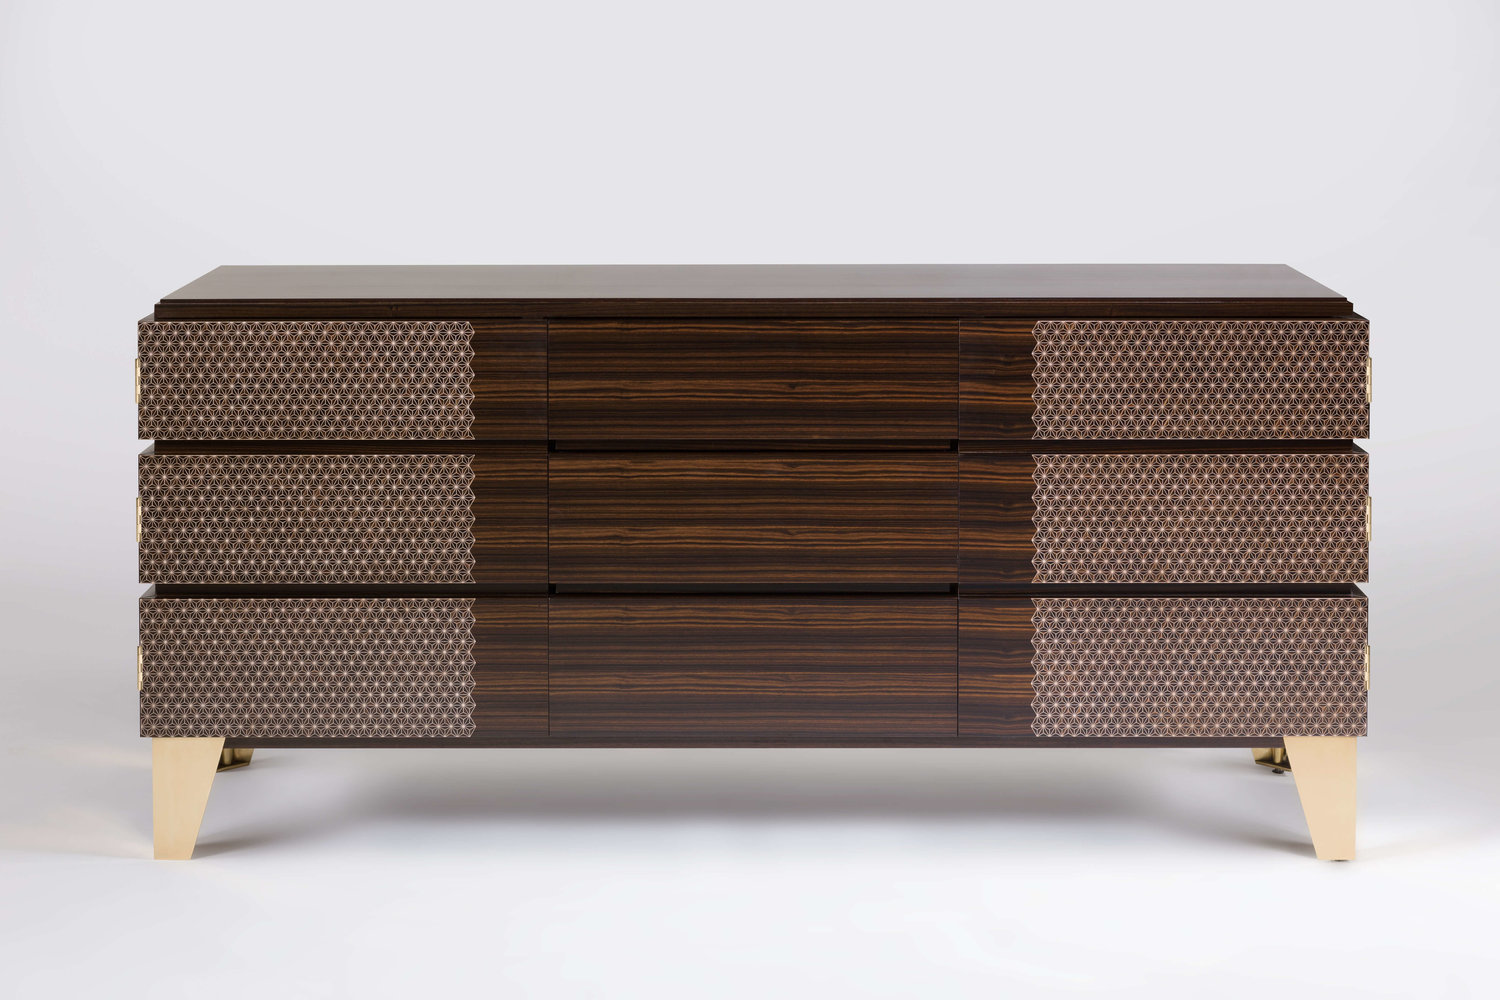 La Credenza Meaning : Recent work u2014 zelouf & bell furniture makers